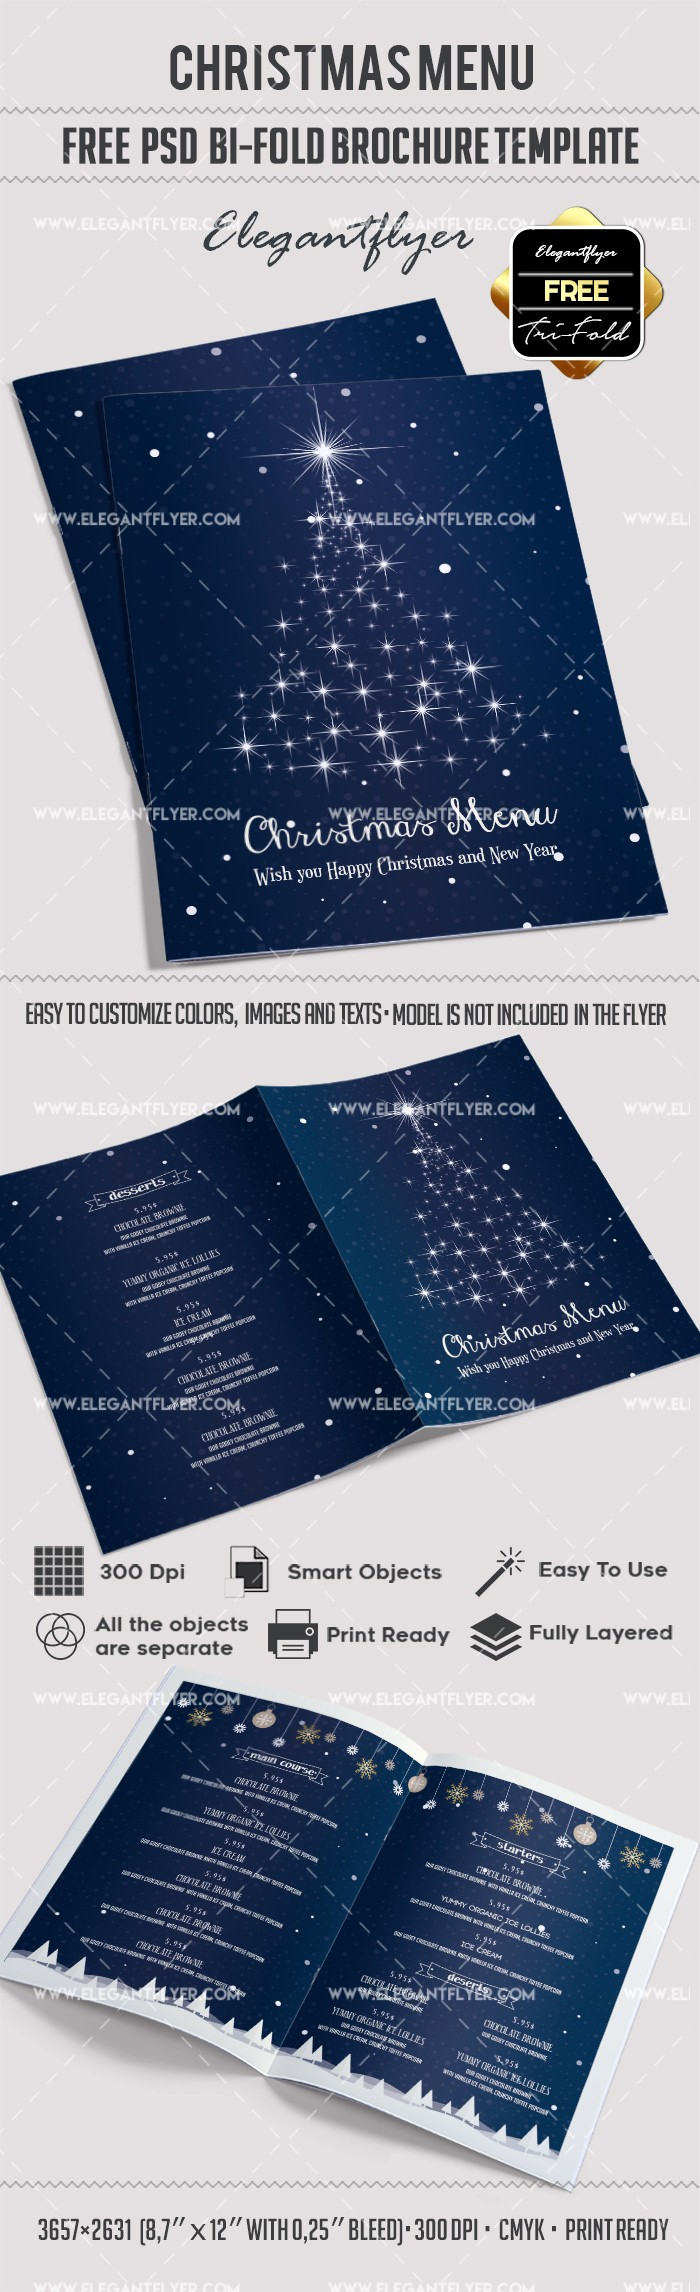 Bi-fold Brochure Template Fresh Free Christmas Menu – Bi Fold Psd Brochure Template – by